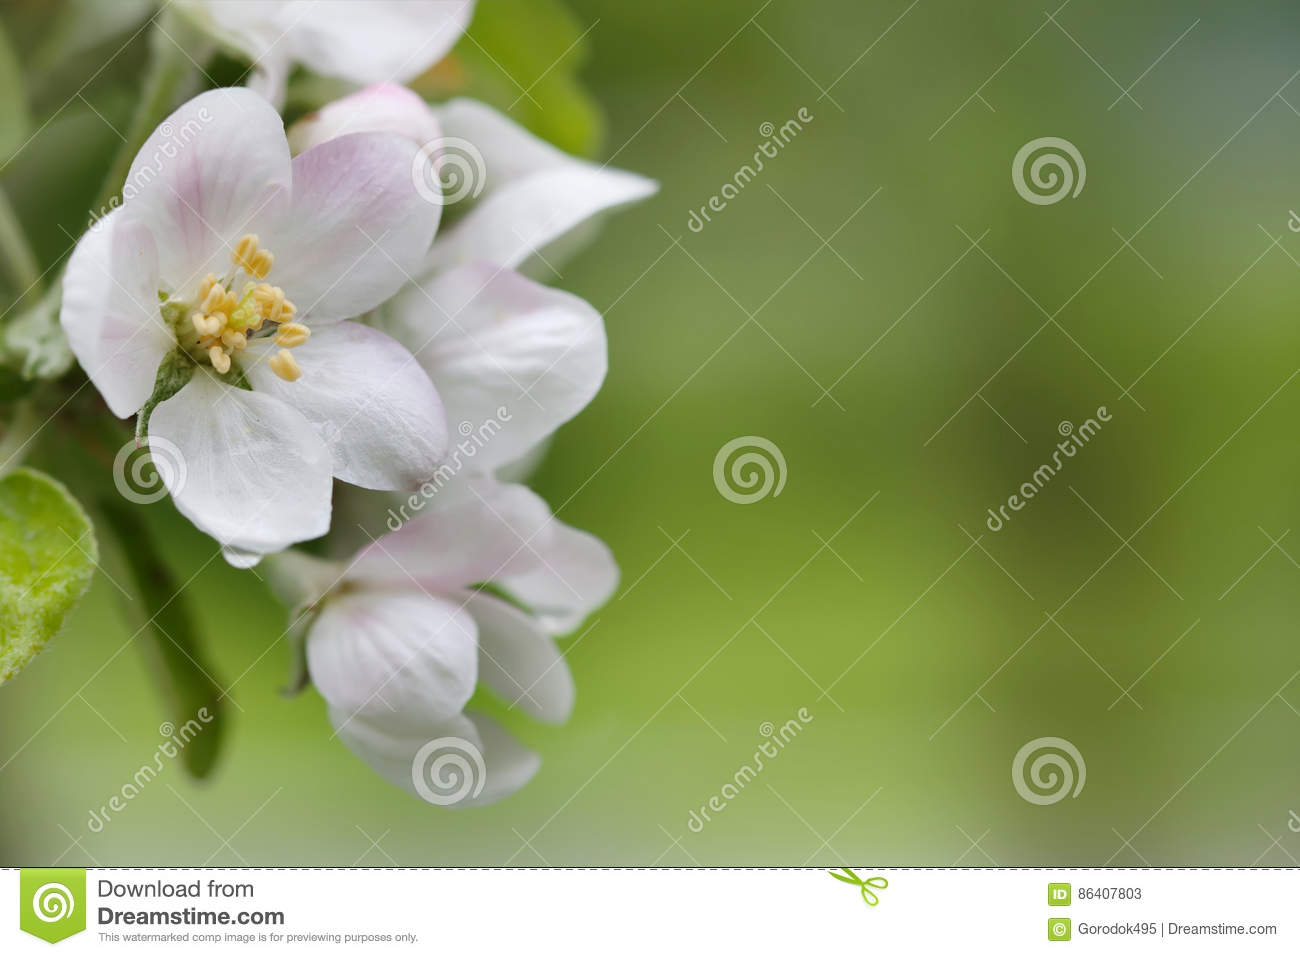 Blooming apple tree. Macro view white flowers. Spring nature landscape. Soft background